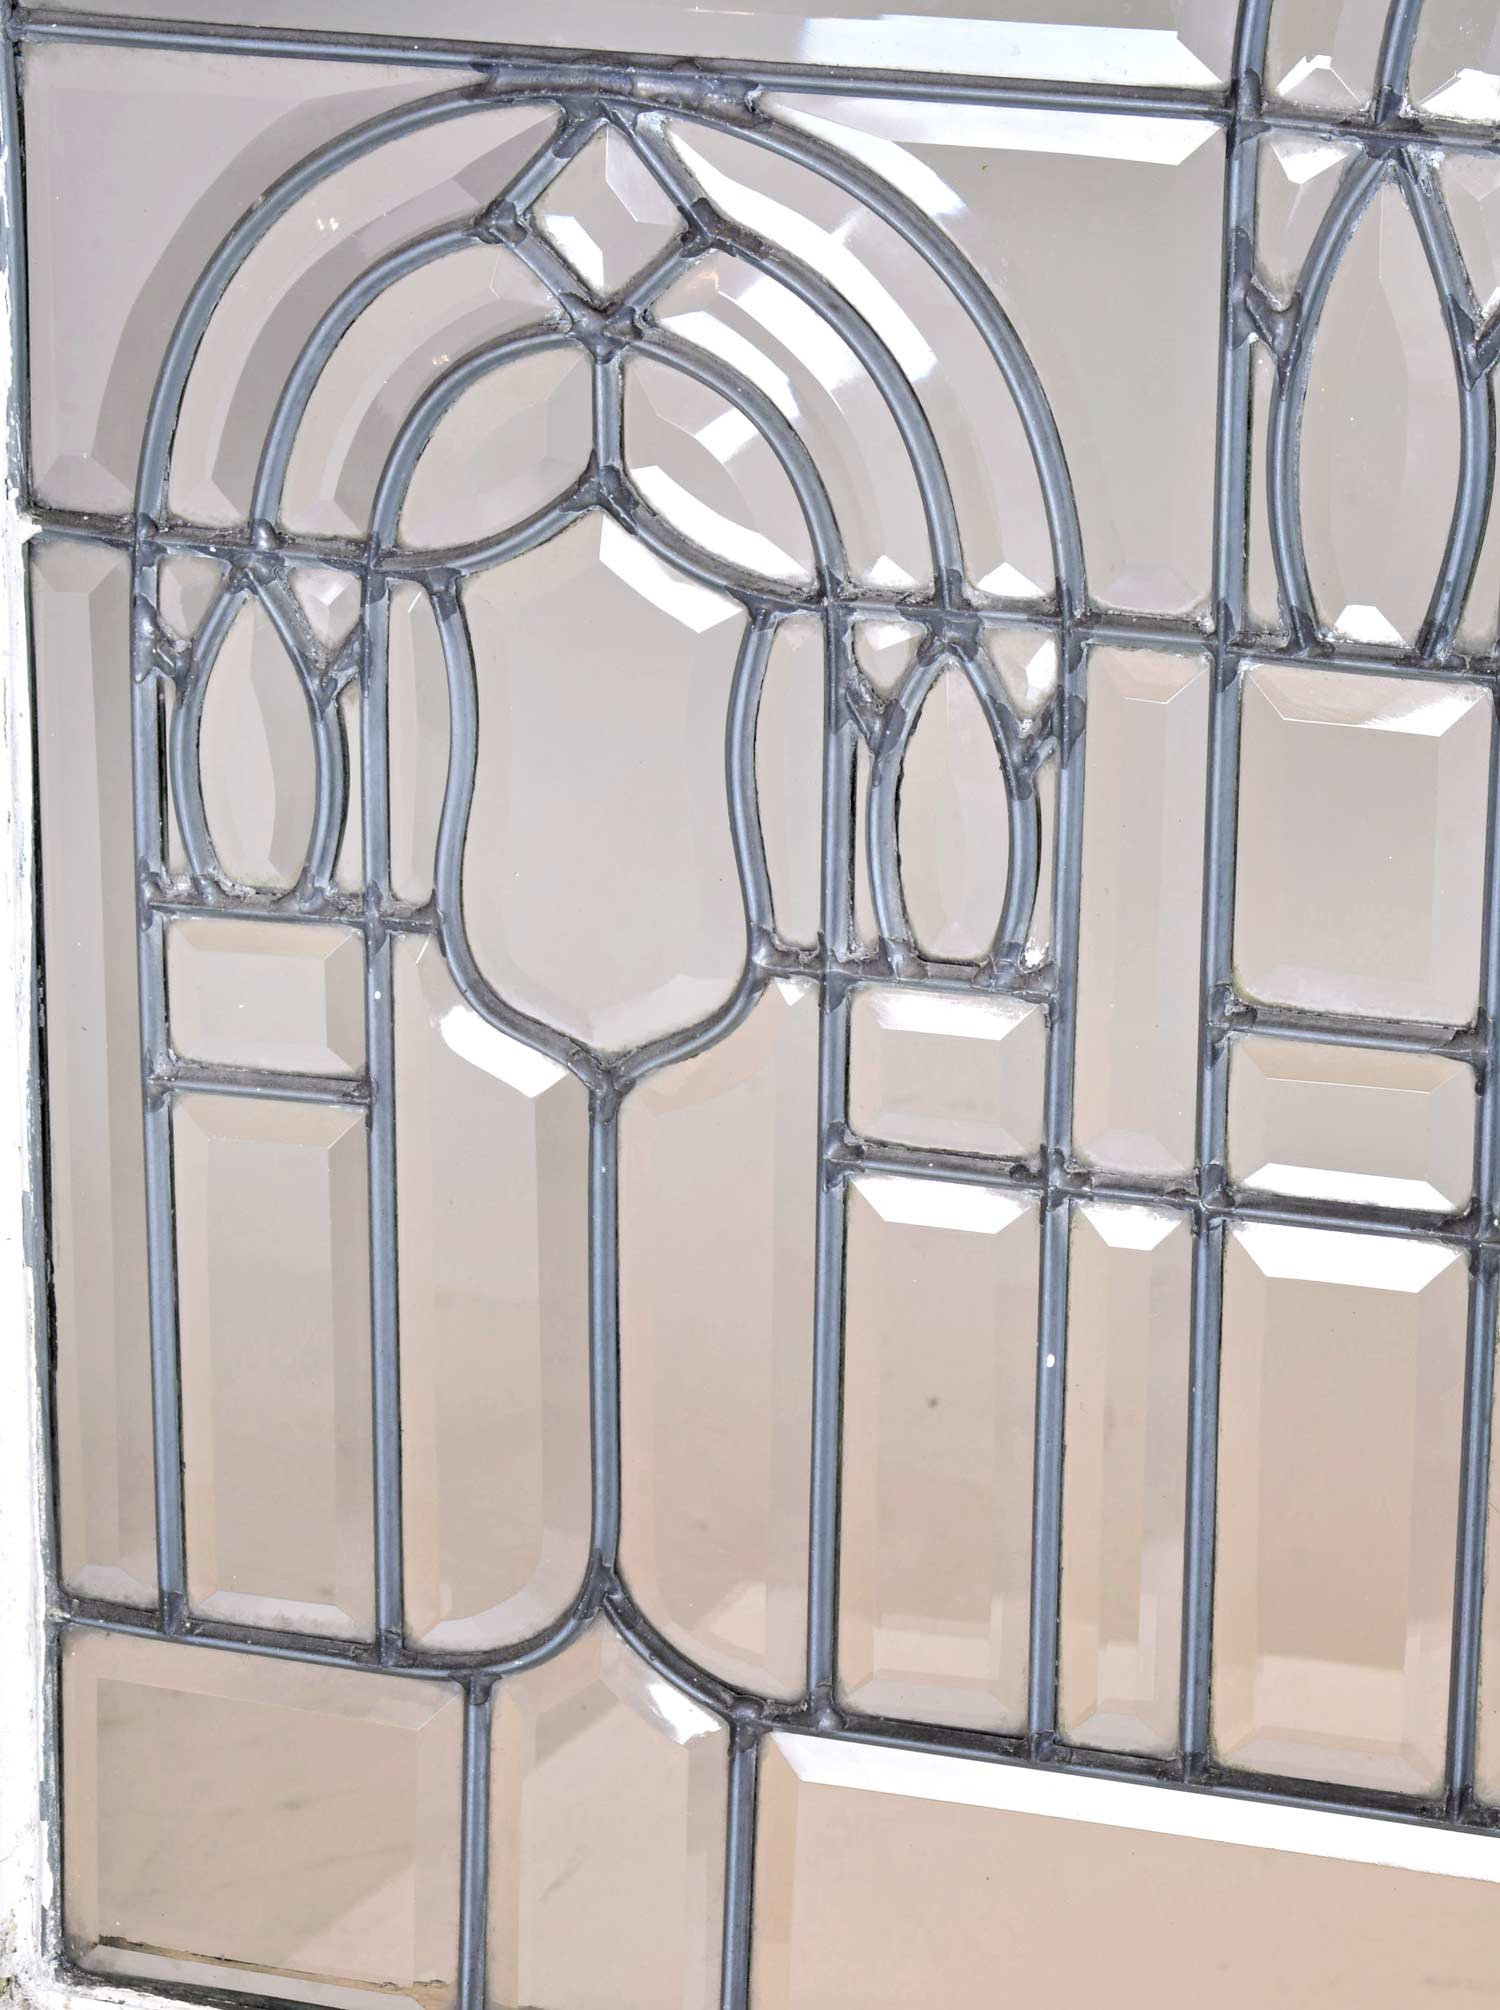 46295-beveled-glass-window-with-arches-detail2.jpg